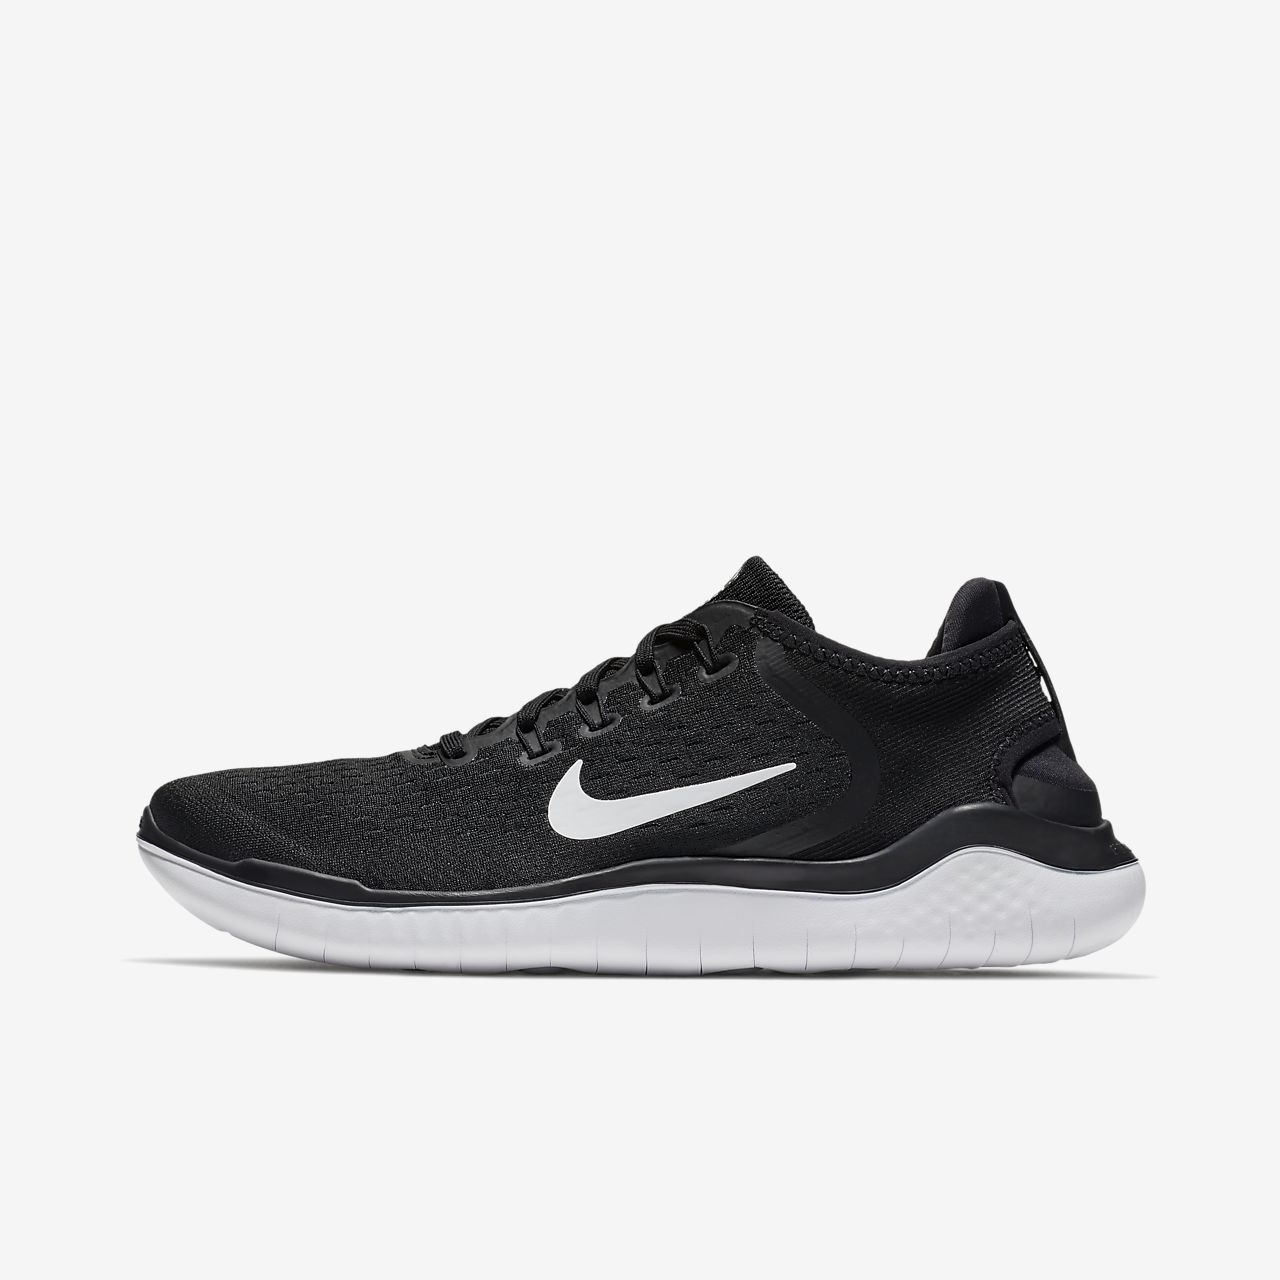 1f54e3f12ee Nike Free RN 2018 Men s Running Shoe. Nike.com IN